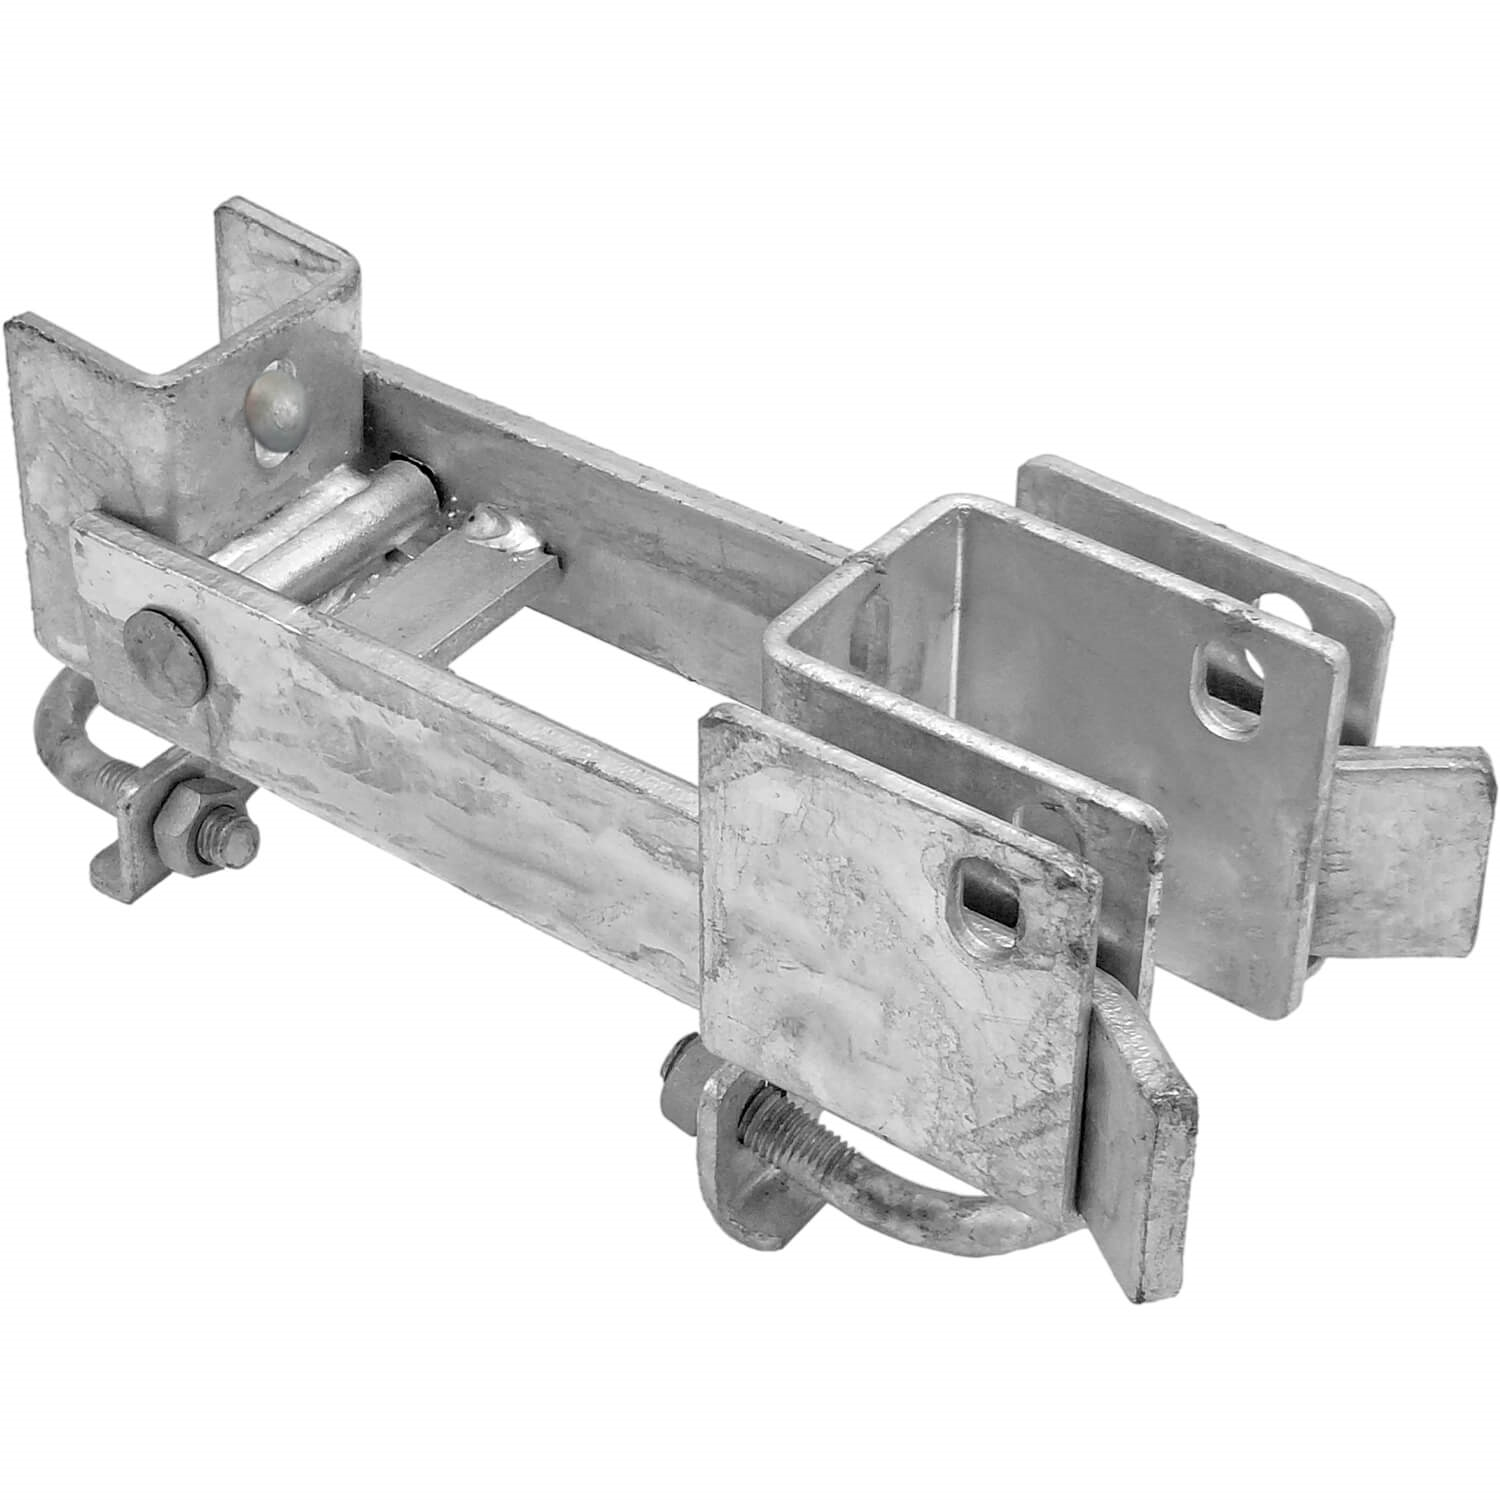 commercial chain link fence parts. Commercial Strong Arm Double Gate Latch Chain Link Fence Parts